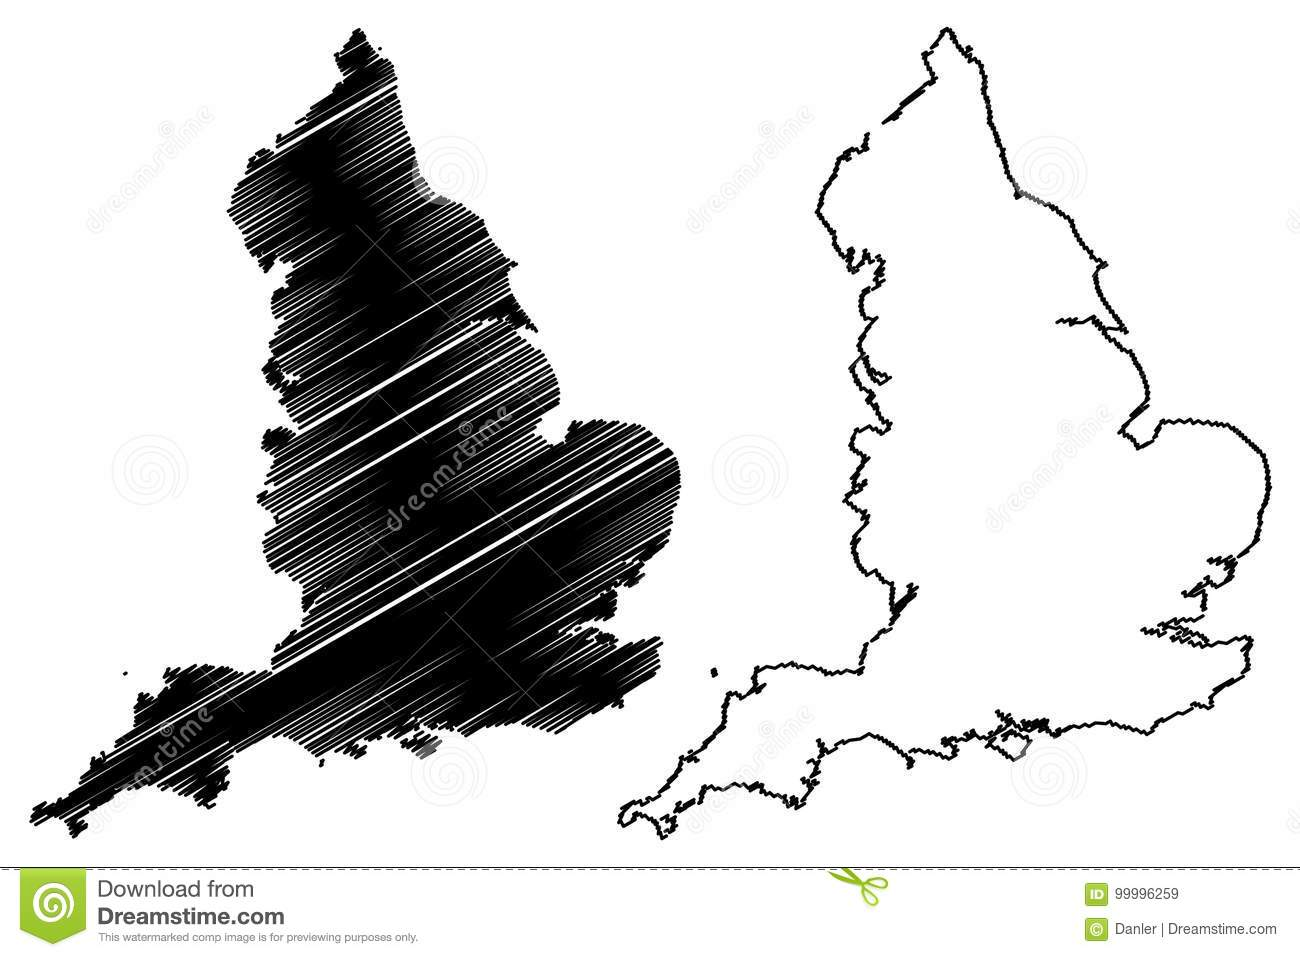 Map Of England Drawing.England Map Vector Stock Vector Illustration Of Drawing 99996259